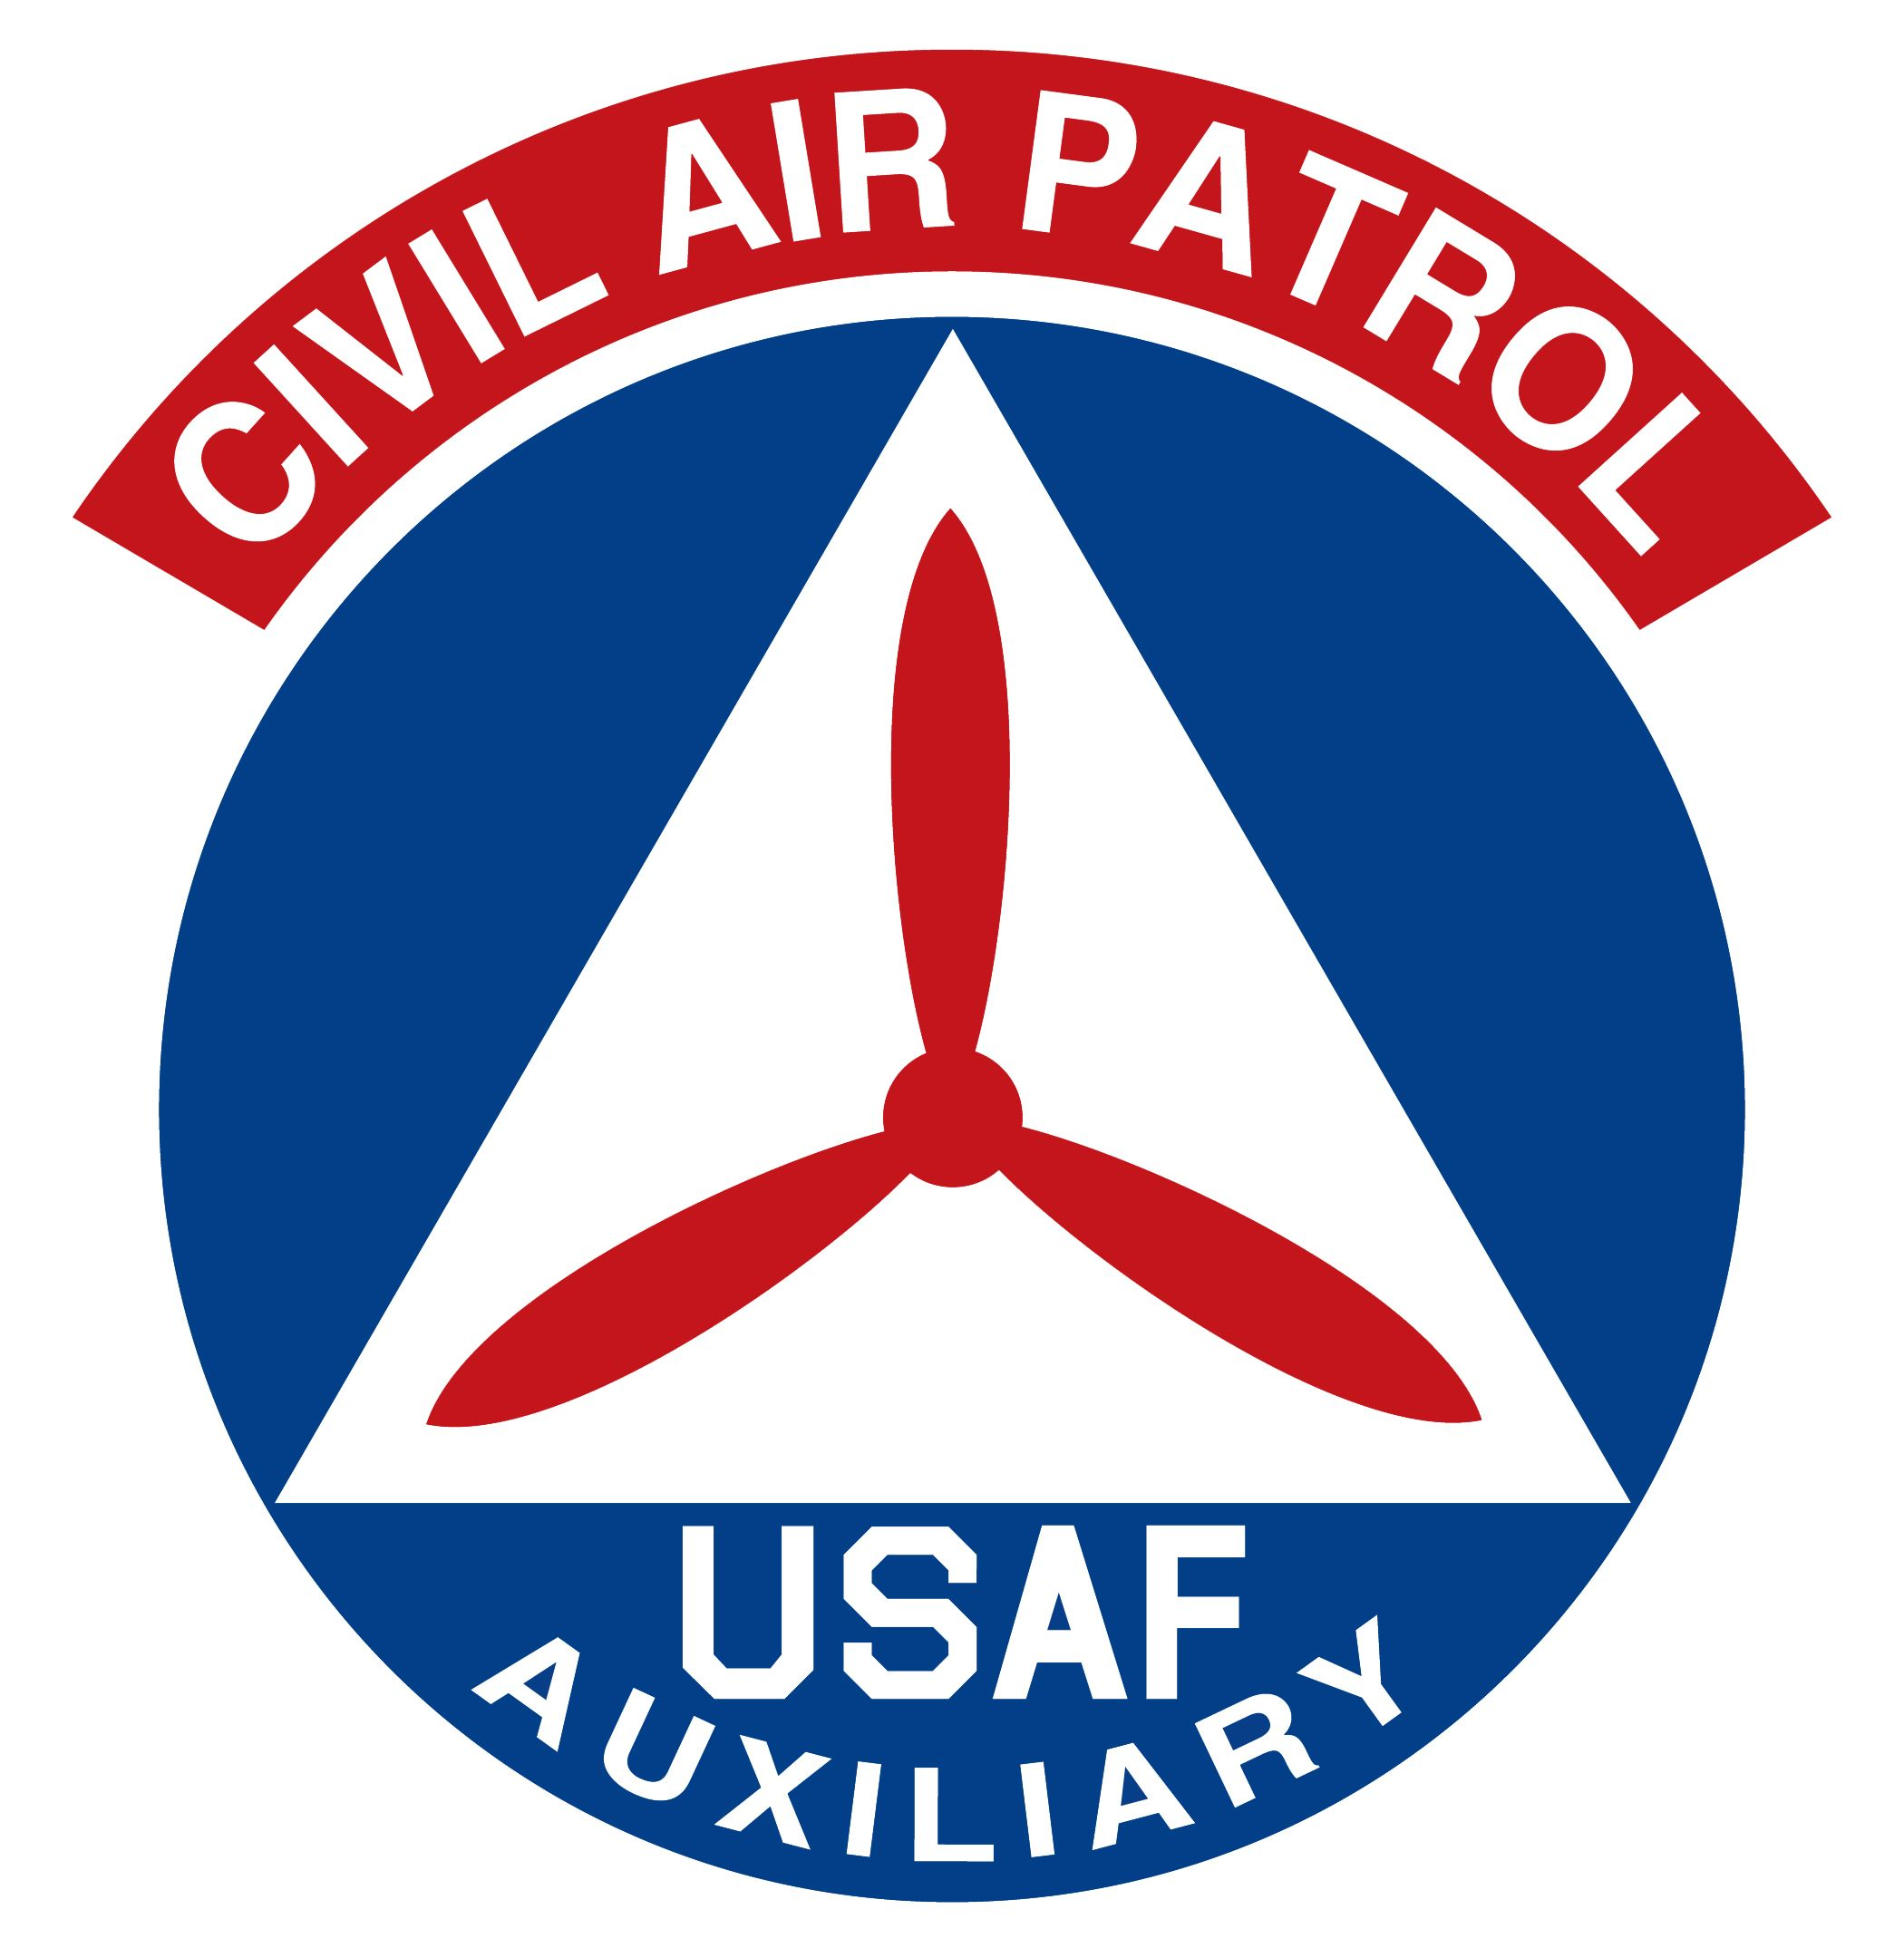 The Civil Air Patrol Above and Beyond Average Youth